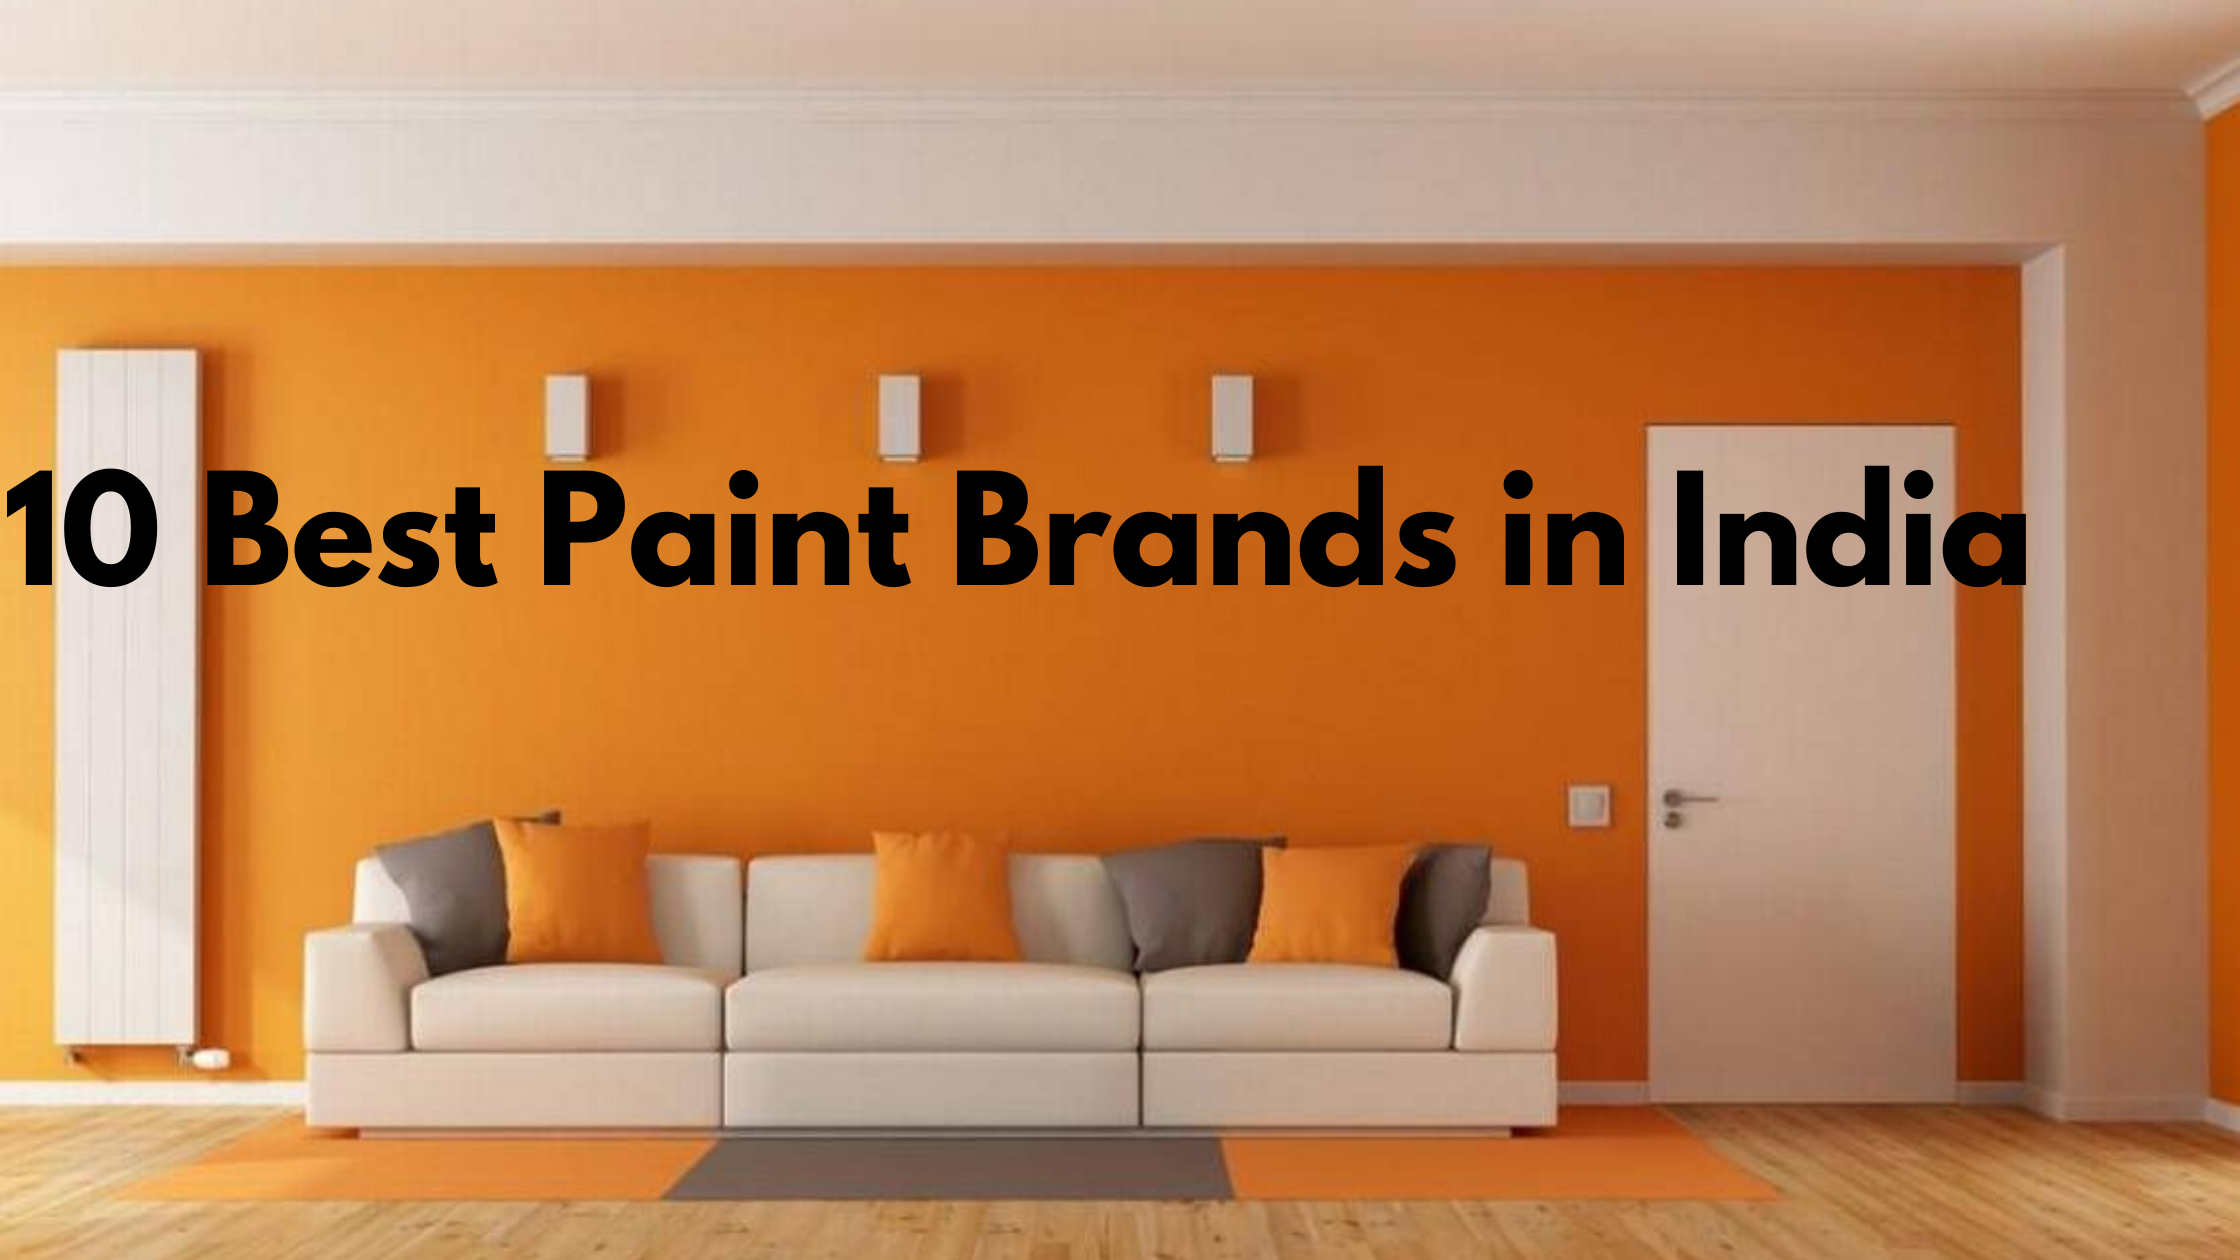 10 Best Paint Brands in India